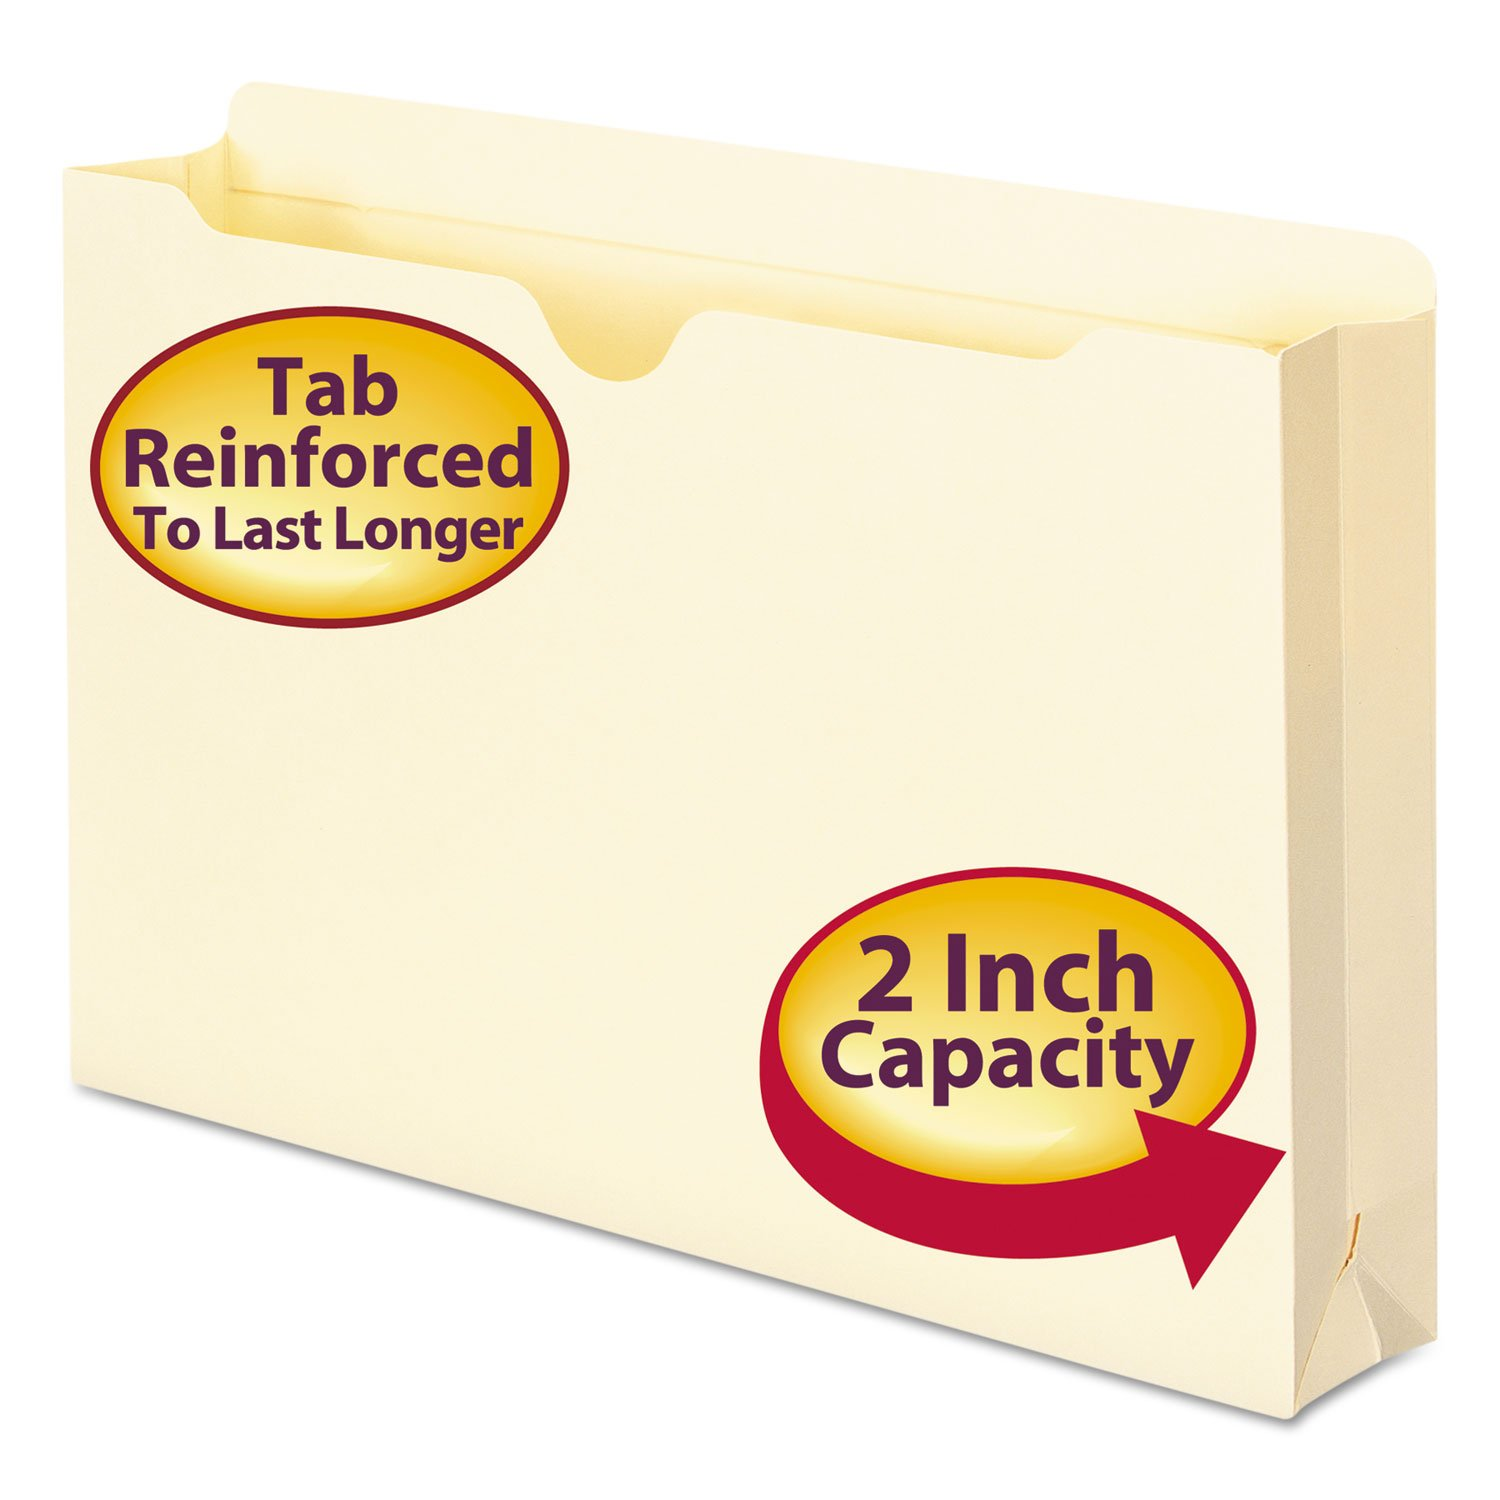 Smead SMD76560 Top Tab File Jackets, 2 Expansion, Straight Cut 2-Ply Tab, Legal Size, Manila, 50 Per Box 2 Expansion Smead Manufacturing Company